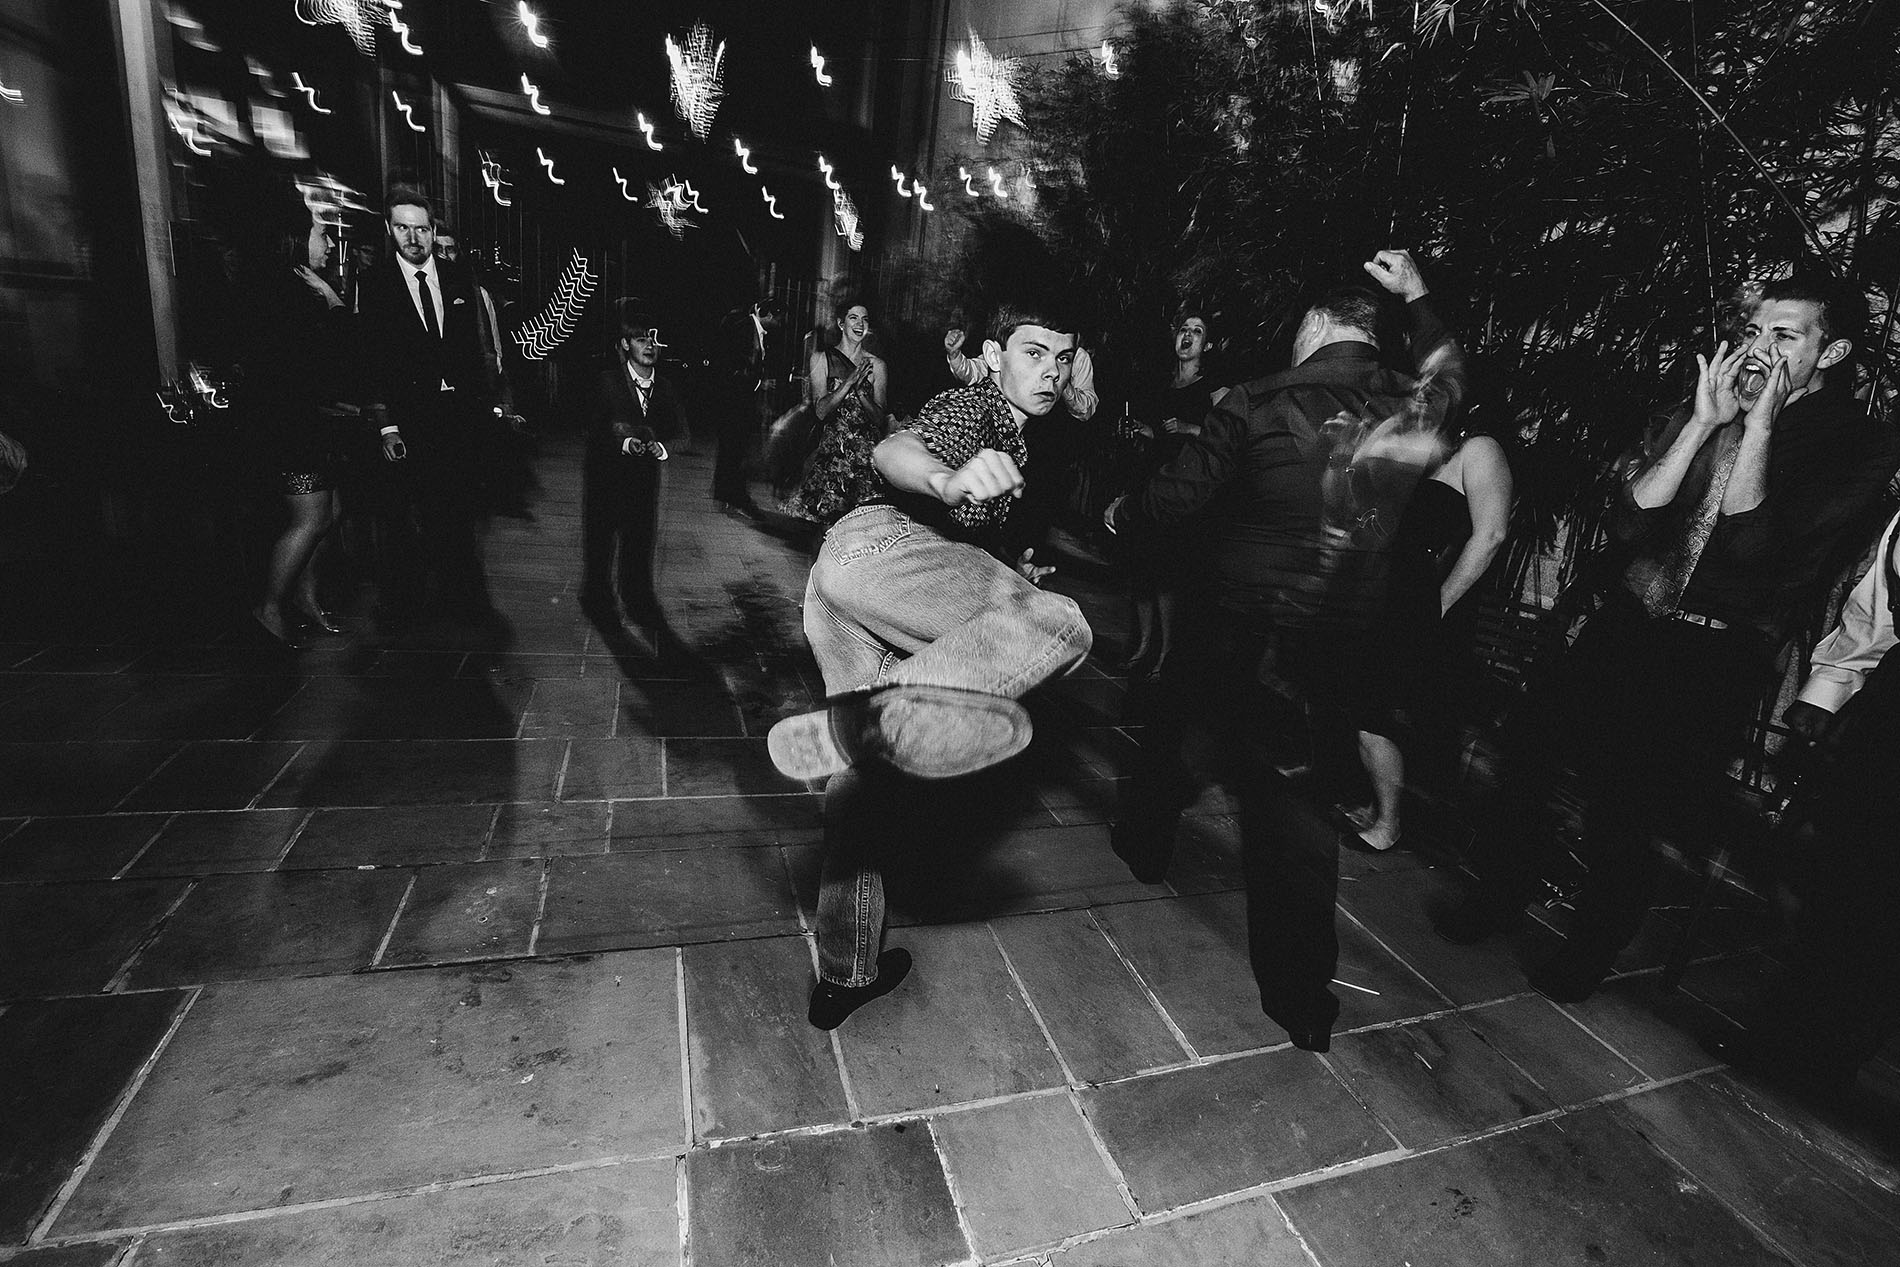 boy Kicking and dancing in a wedding